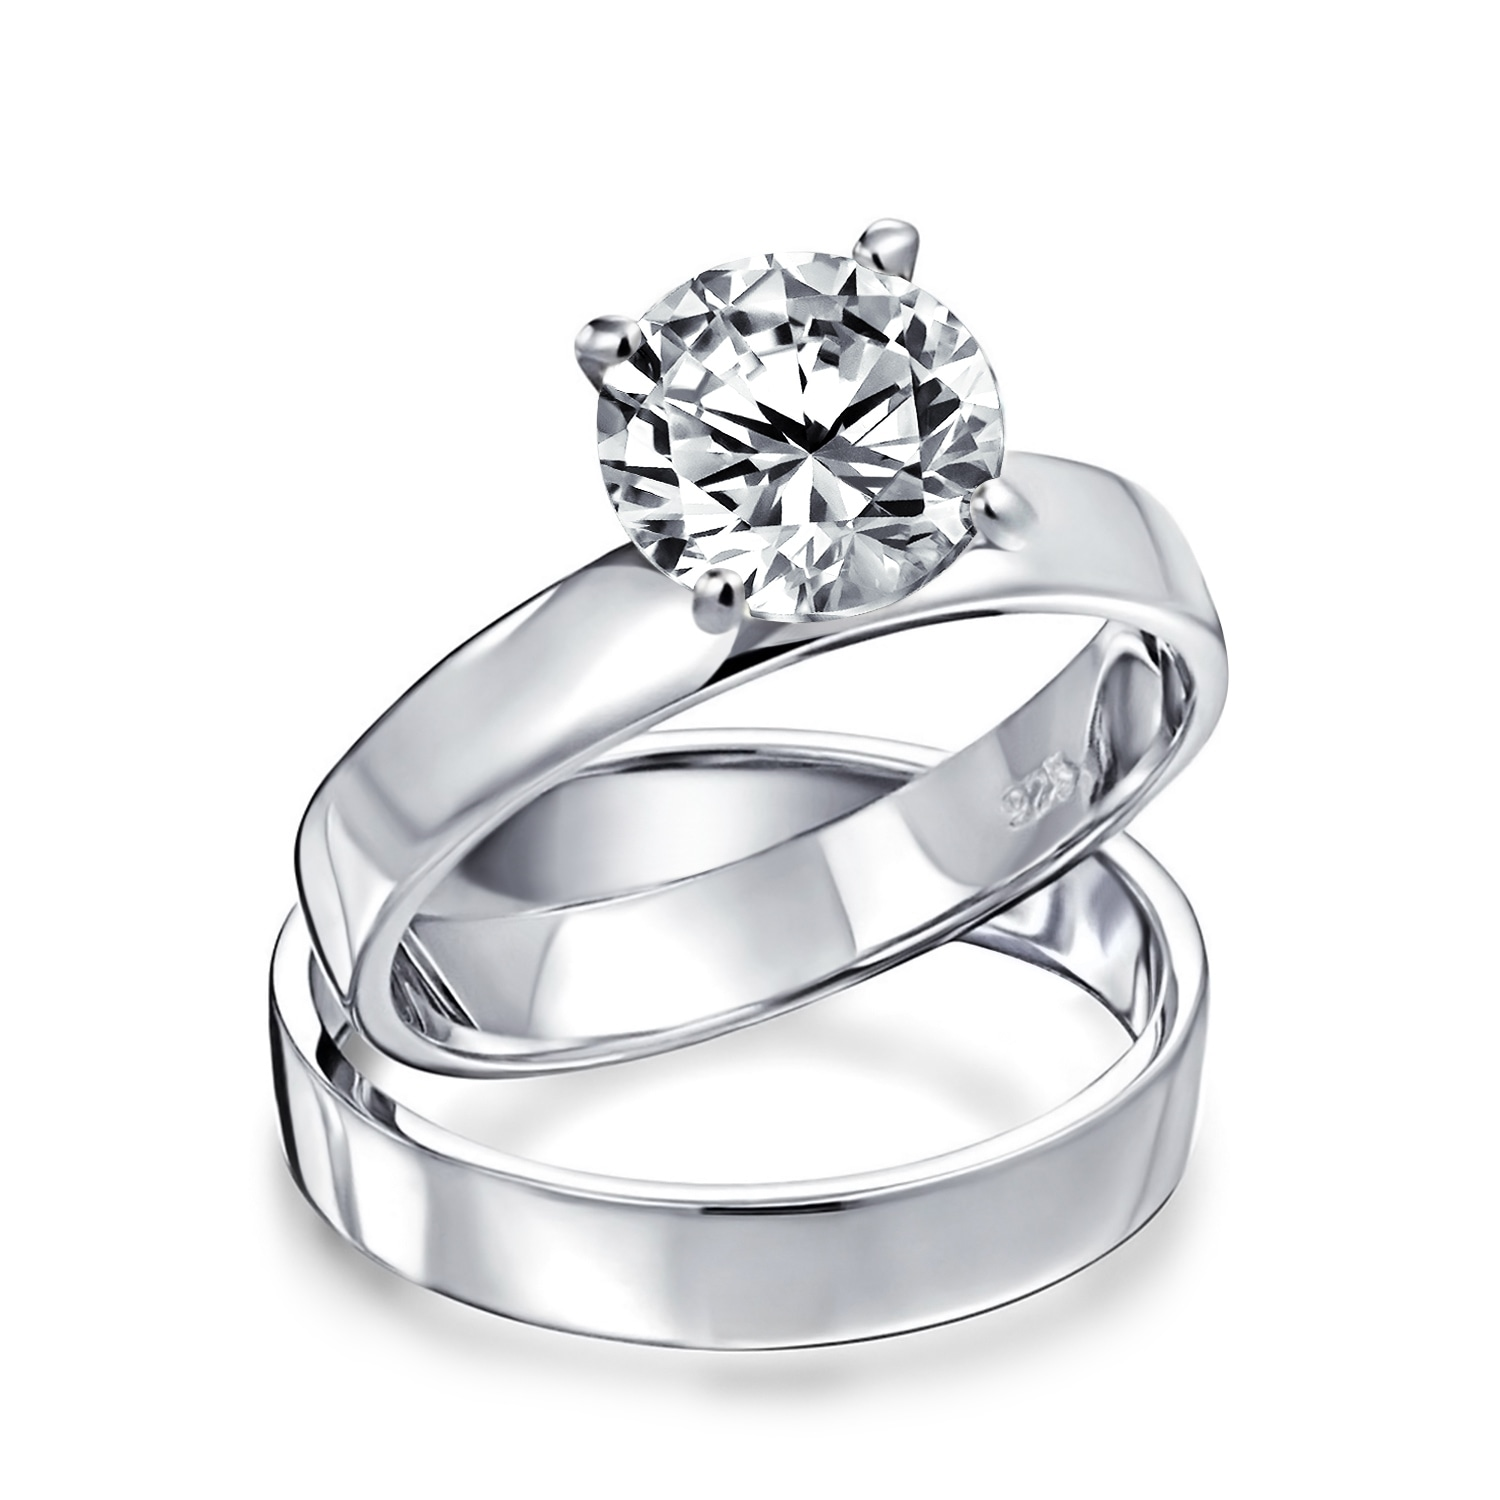 Shop 2ct Solitaire Band Aaa Cz Engagement Wedding Ring Set Sterling Silver Overstock 18112167 6